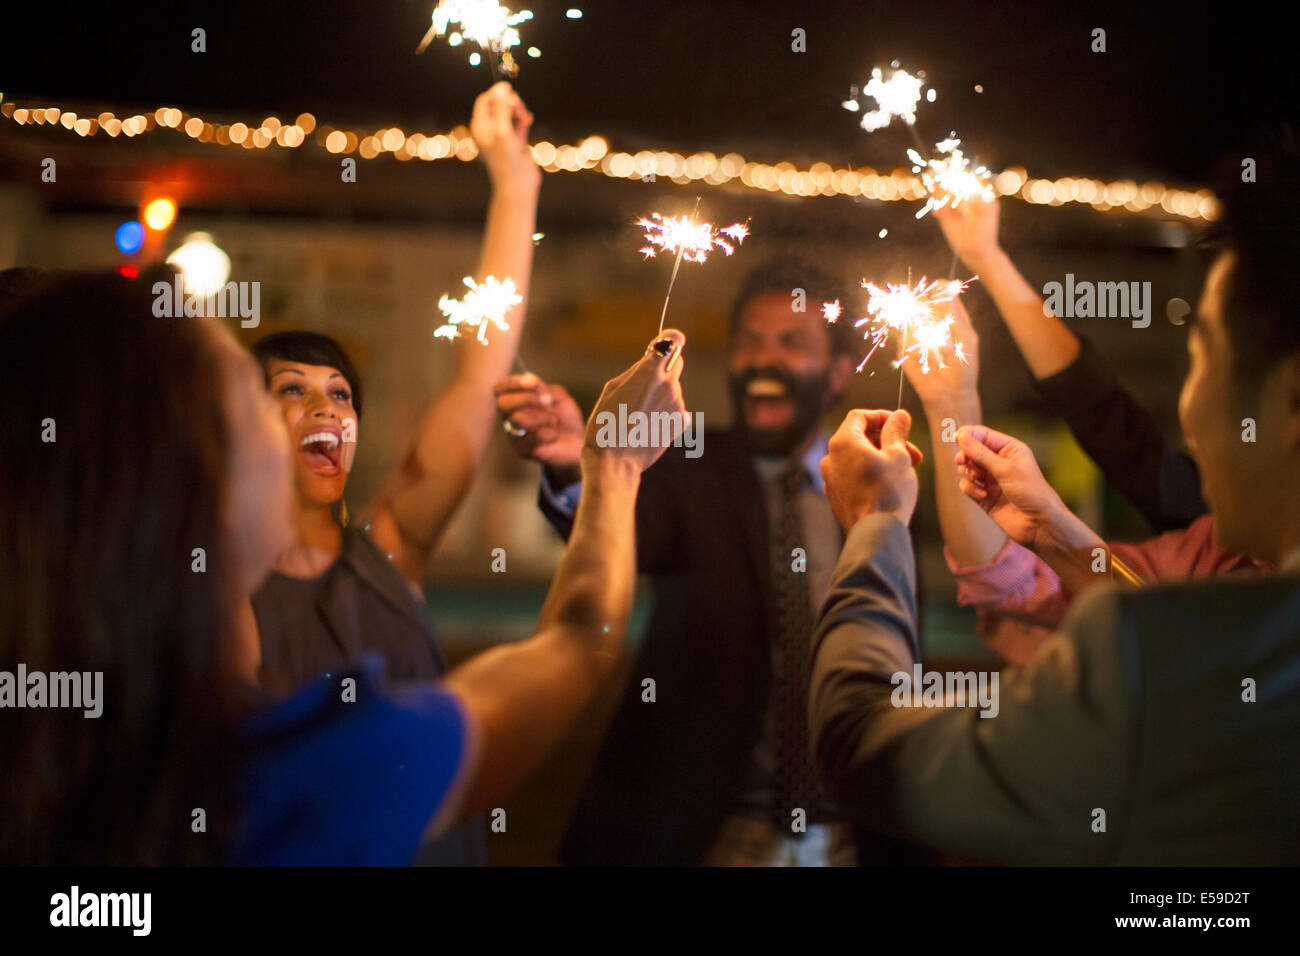 Friends playing with sparklers at party - Stock Image